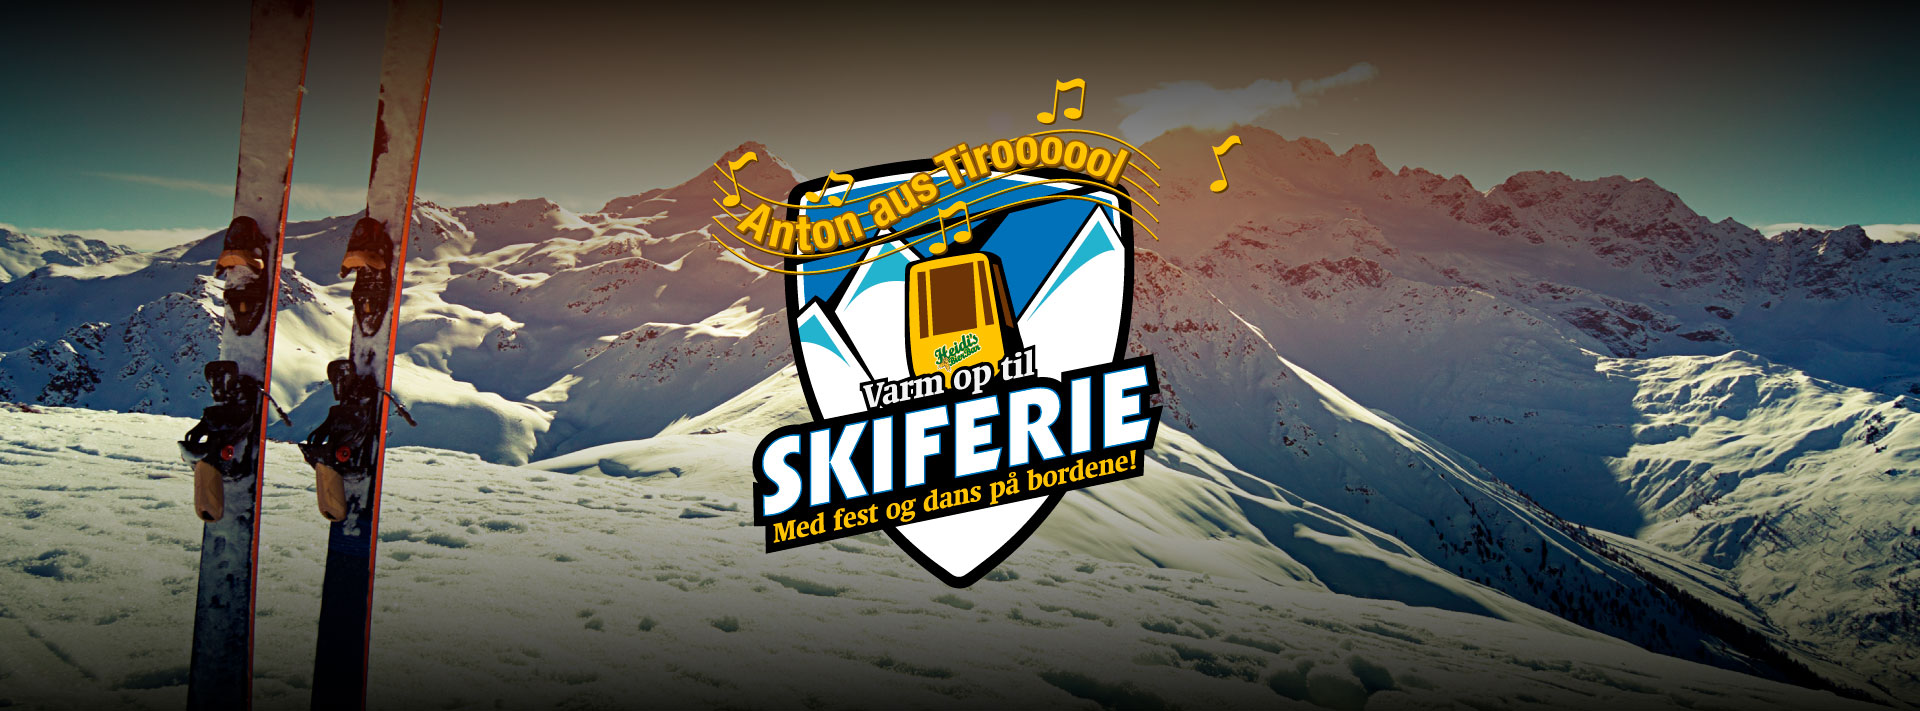 skiferie-heidis-website-cover